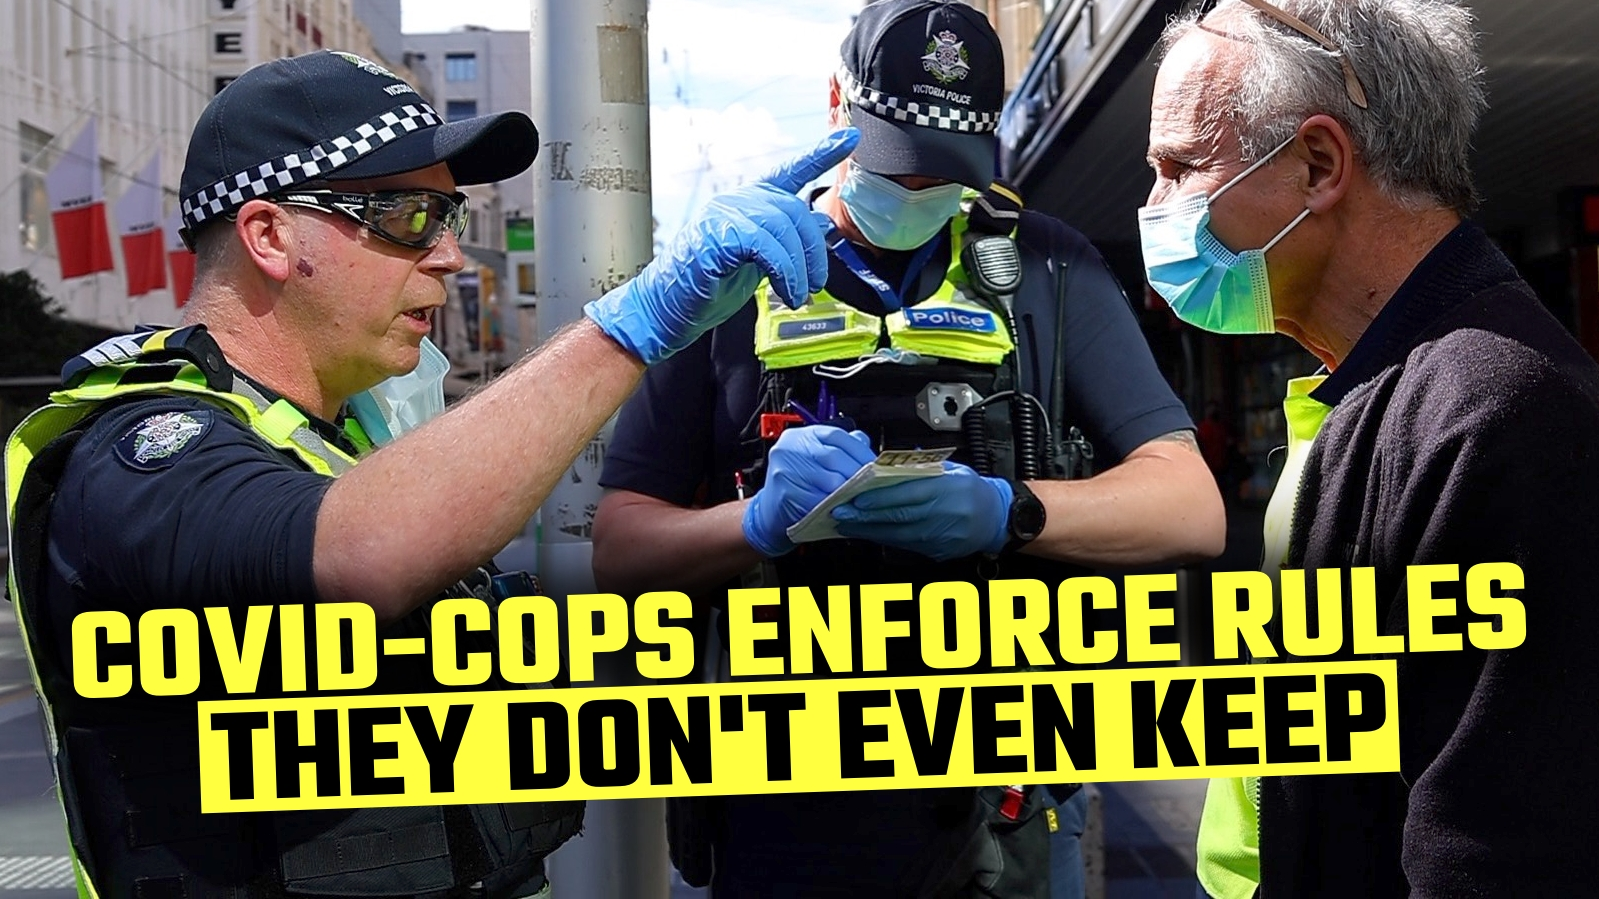 WATCH: This is what life looks like in the POLICE STATE of Victoria